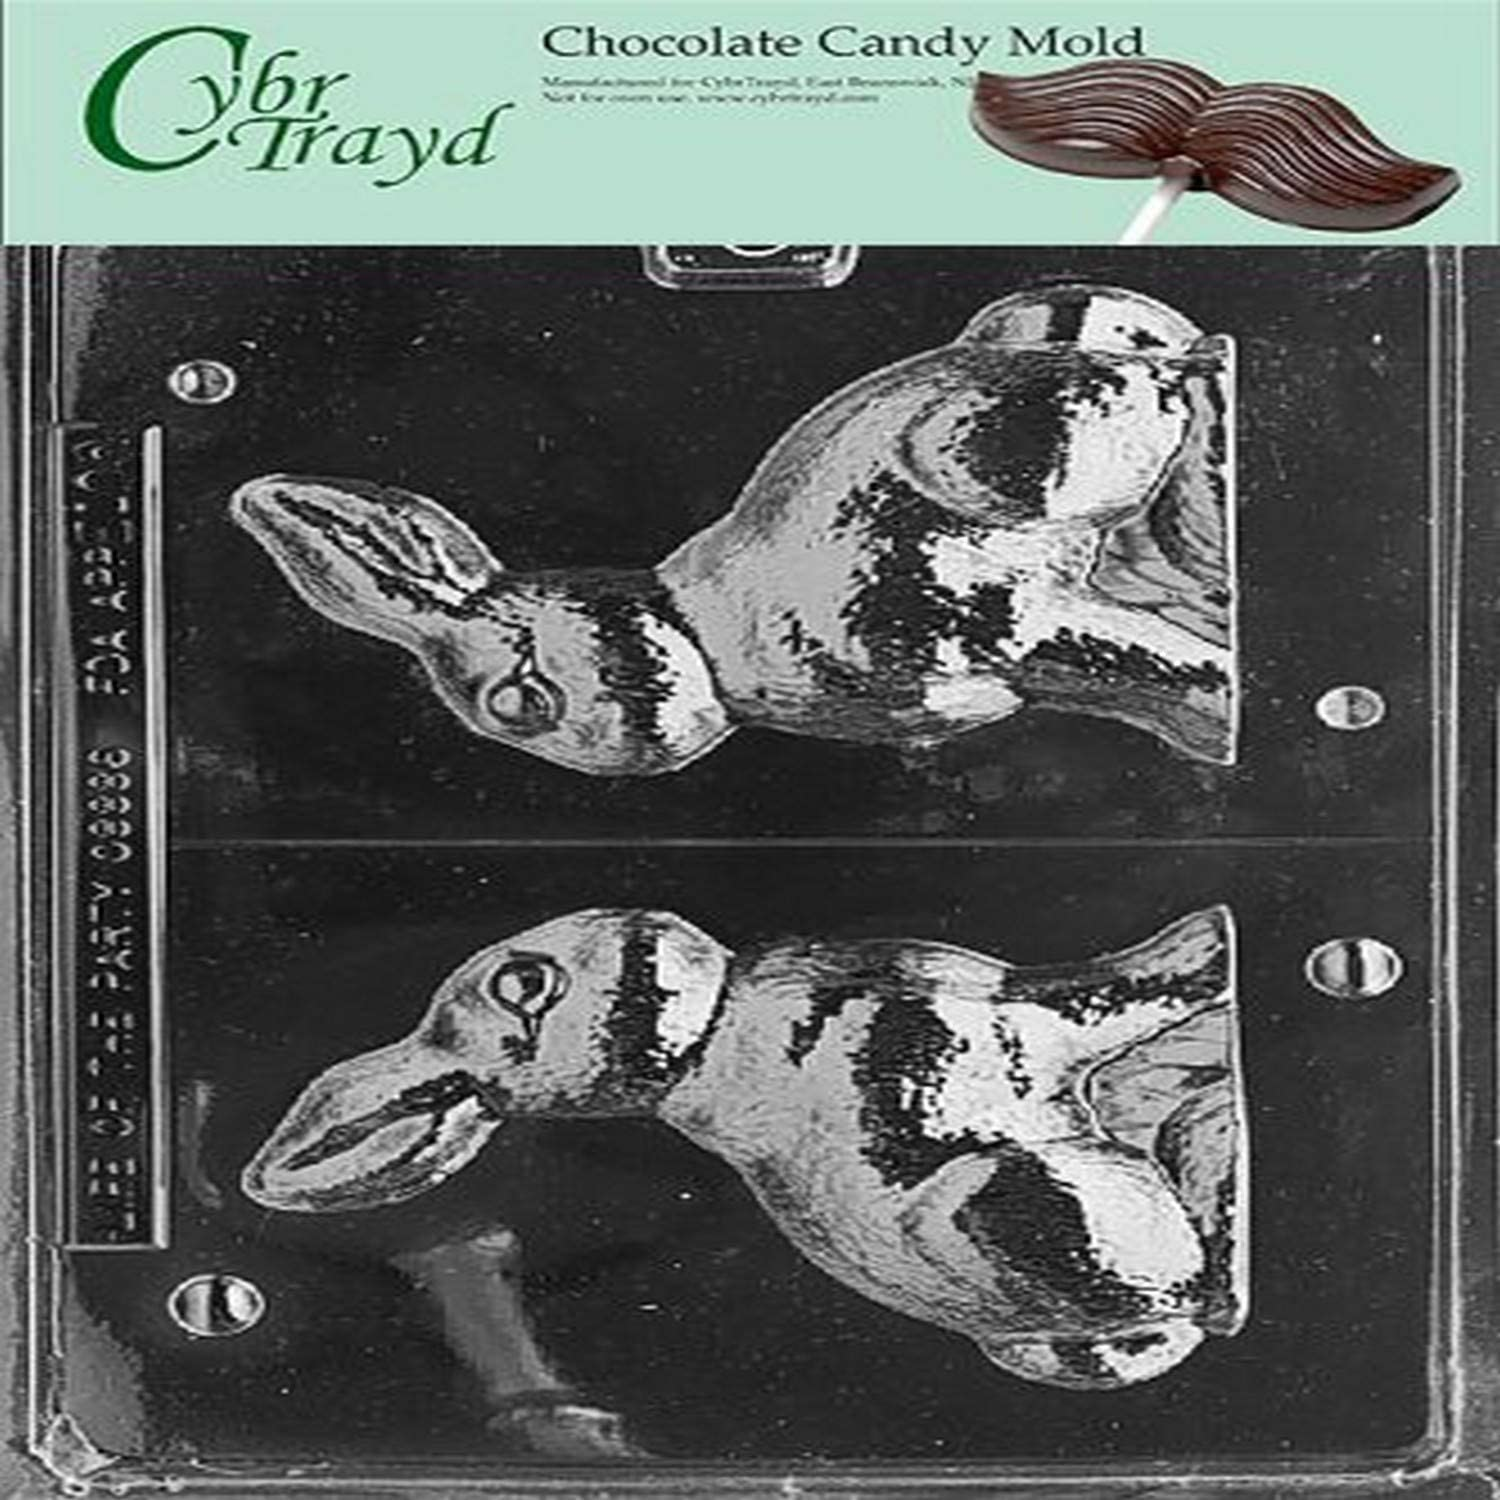 E134 Large Easter Bunny Chocolate Candy Soap Mold with Instructions